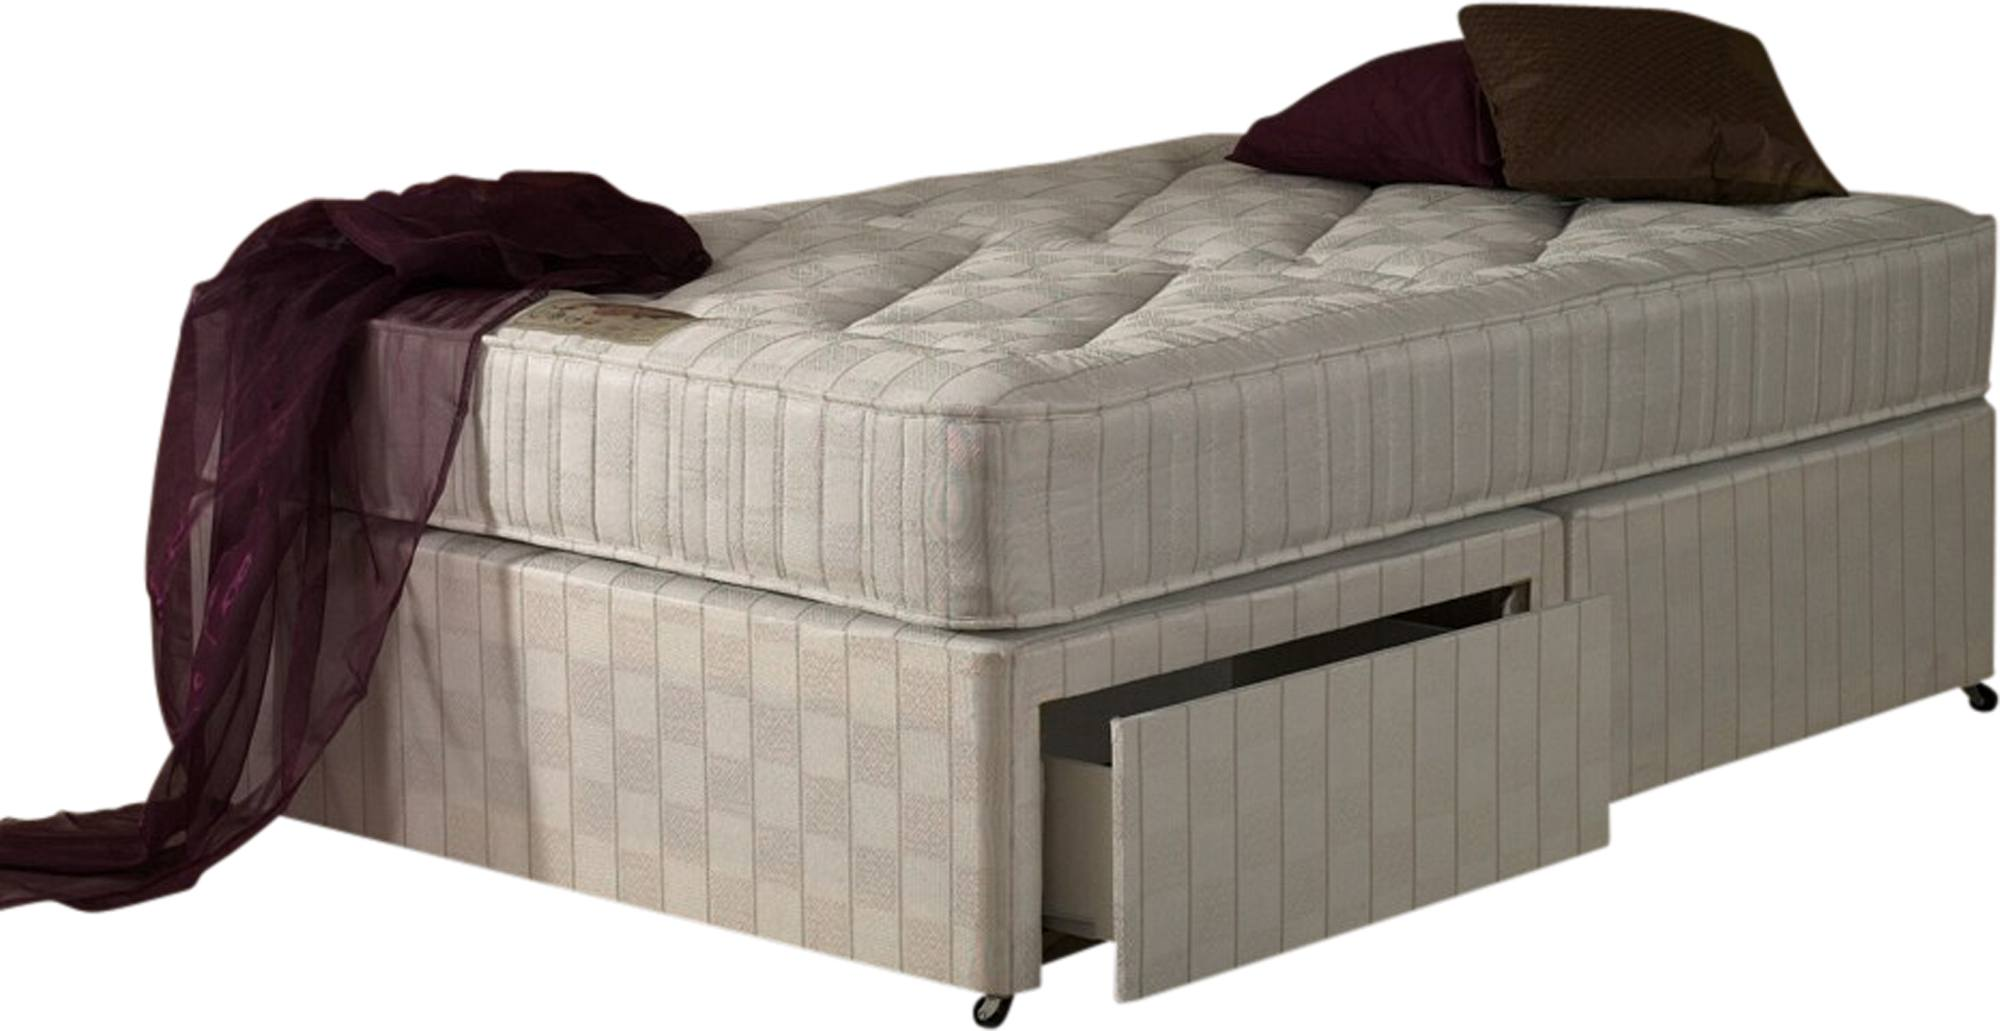 easy to move from a to b a bed thats easy to transport is both convenient and less hassle especially if youre moving house so consider that most box - Box Spring Vs Bed Frame